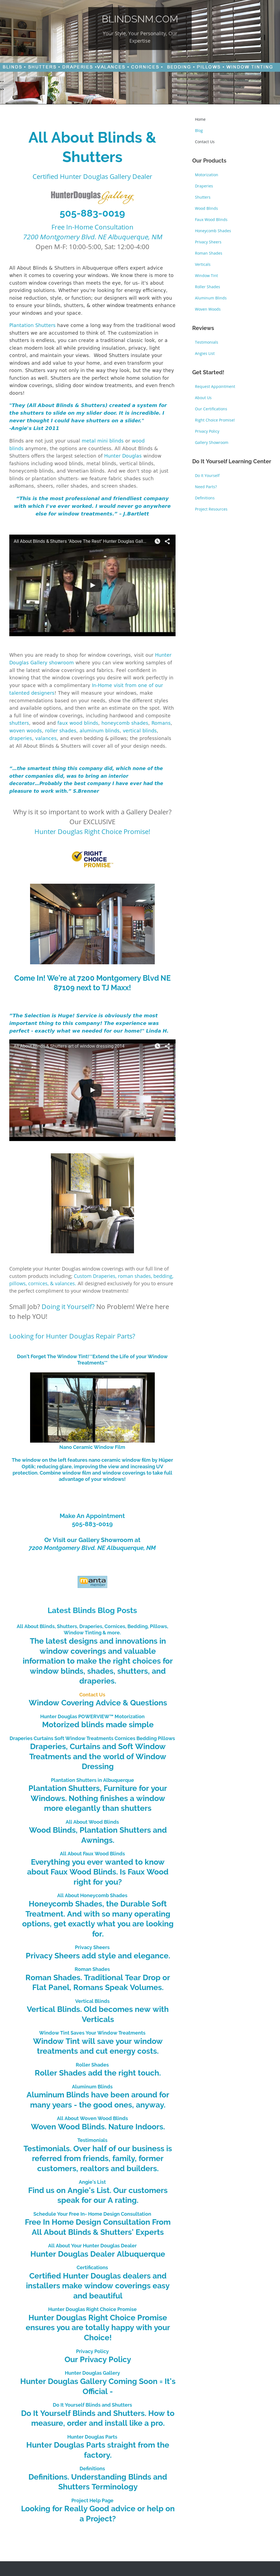 All About Blinds And Shutters Compeors Revenue Employees Owler Company Profile